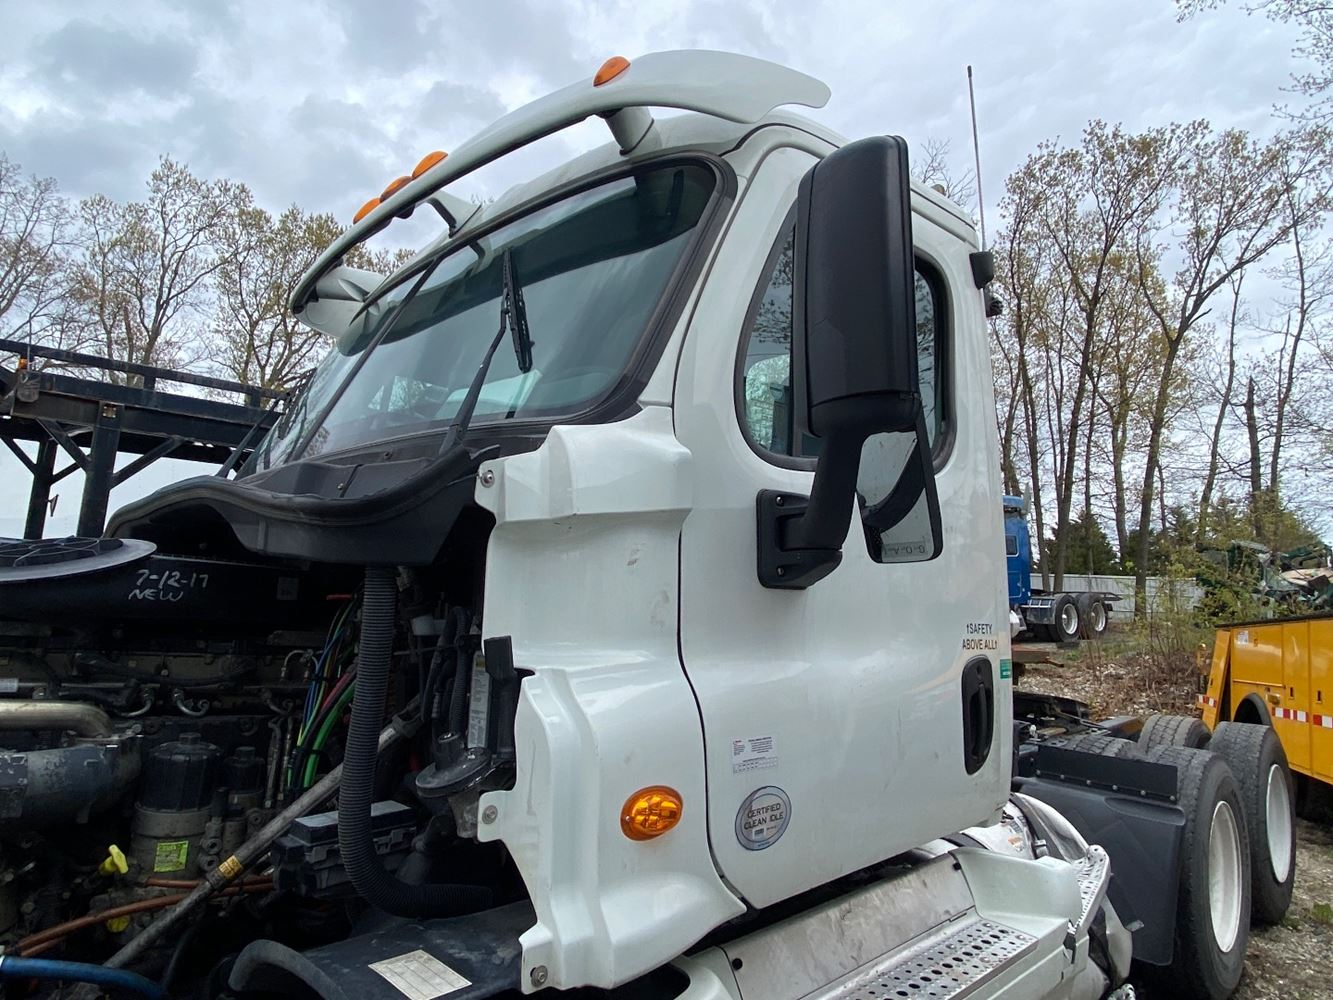 2013 FREIGHTLINER CASCADIA 125 CAB TRUCK PARTS #721874